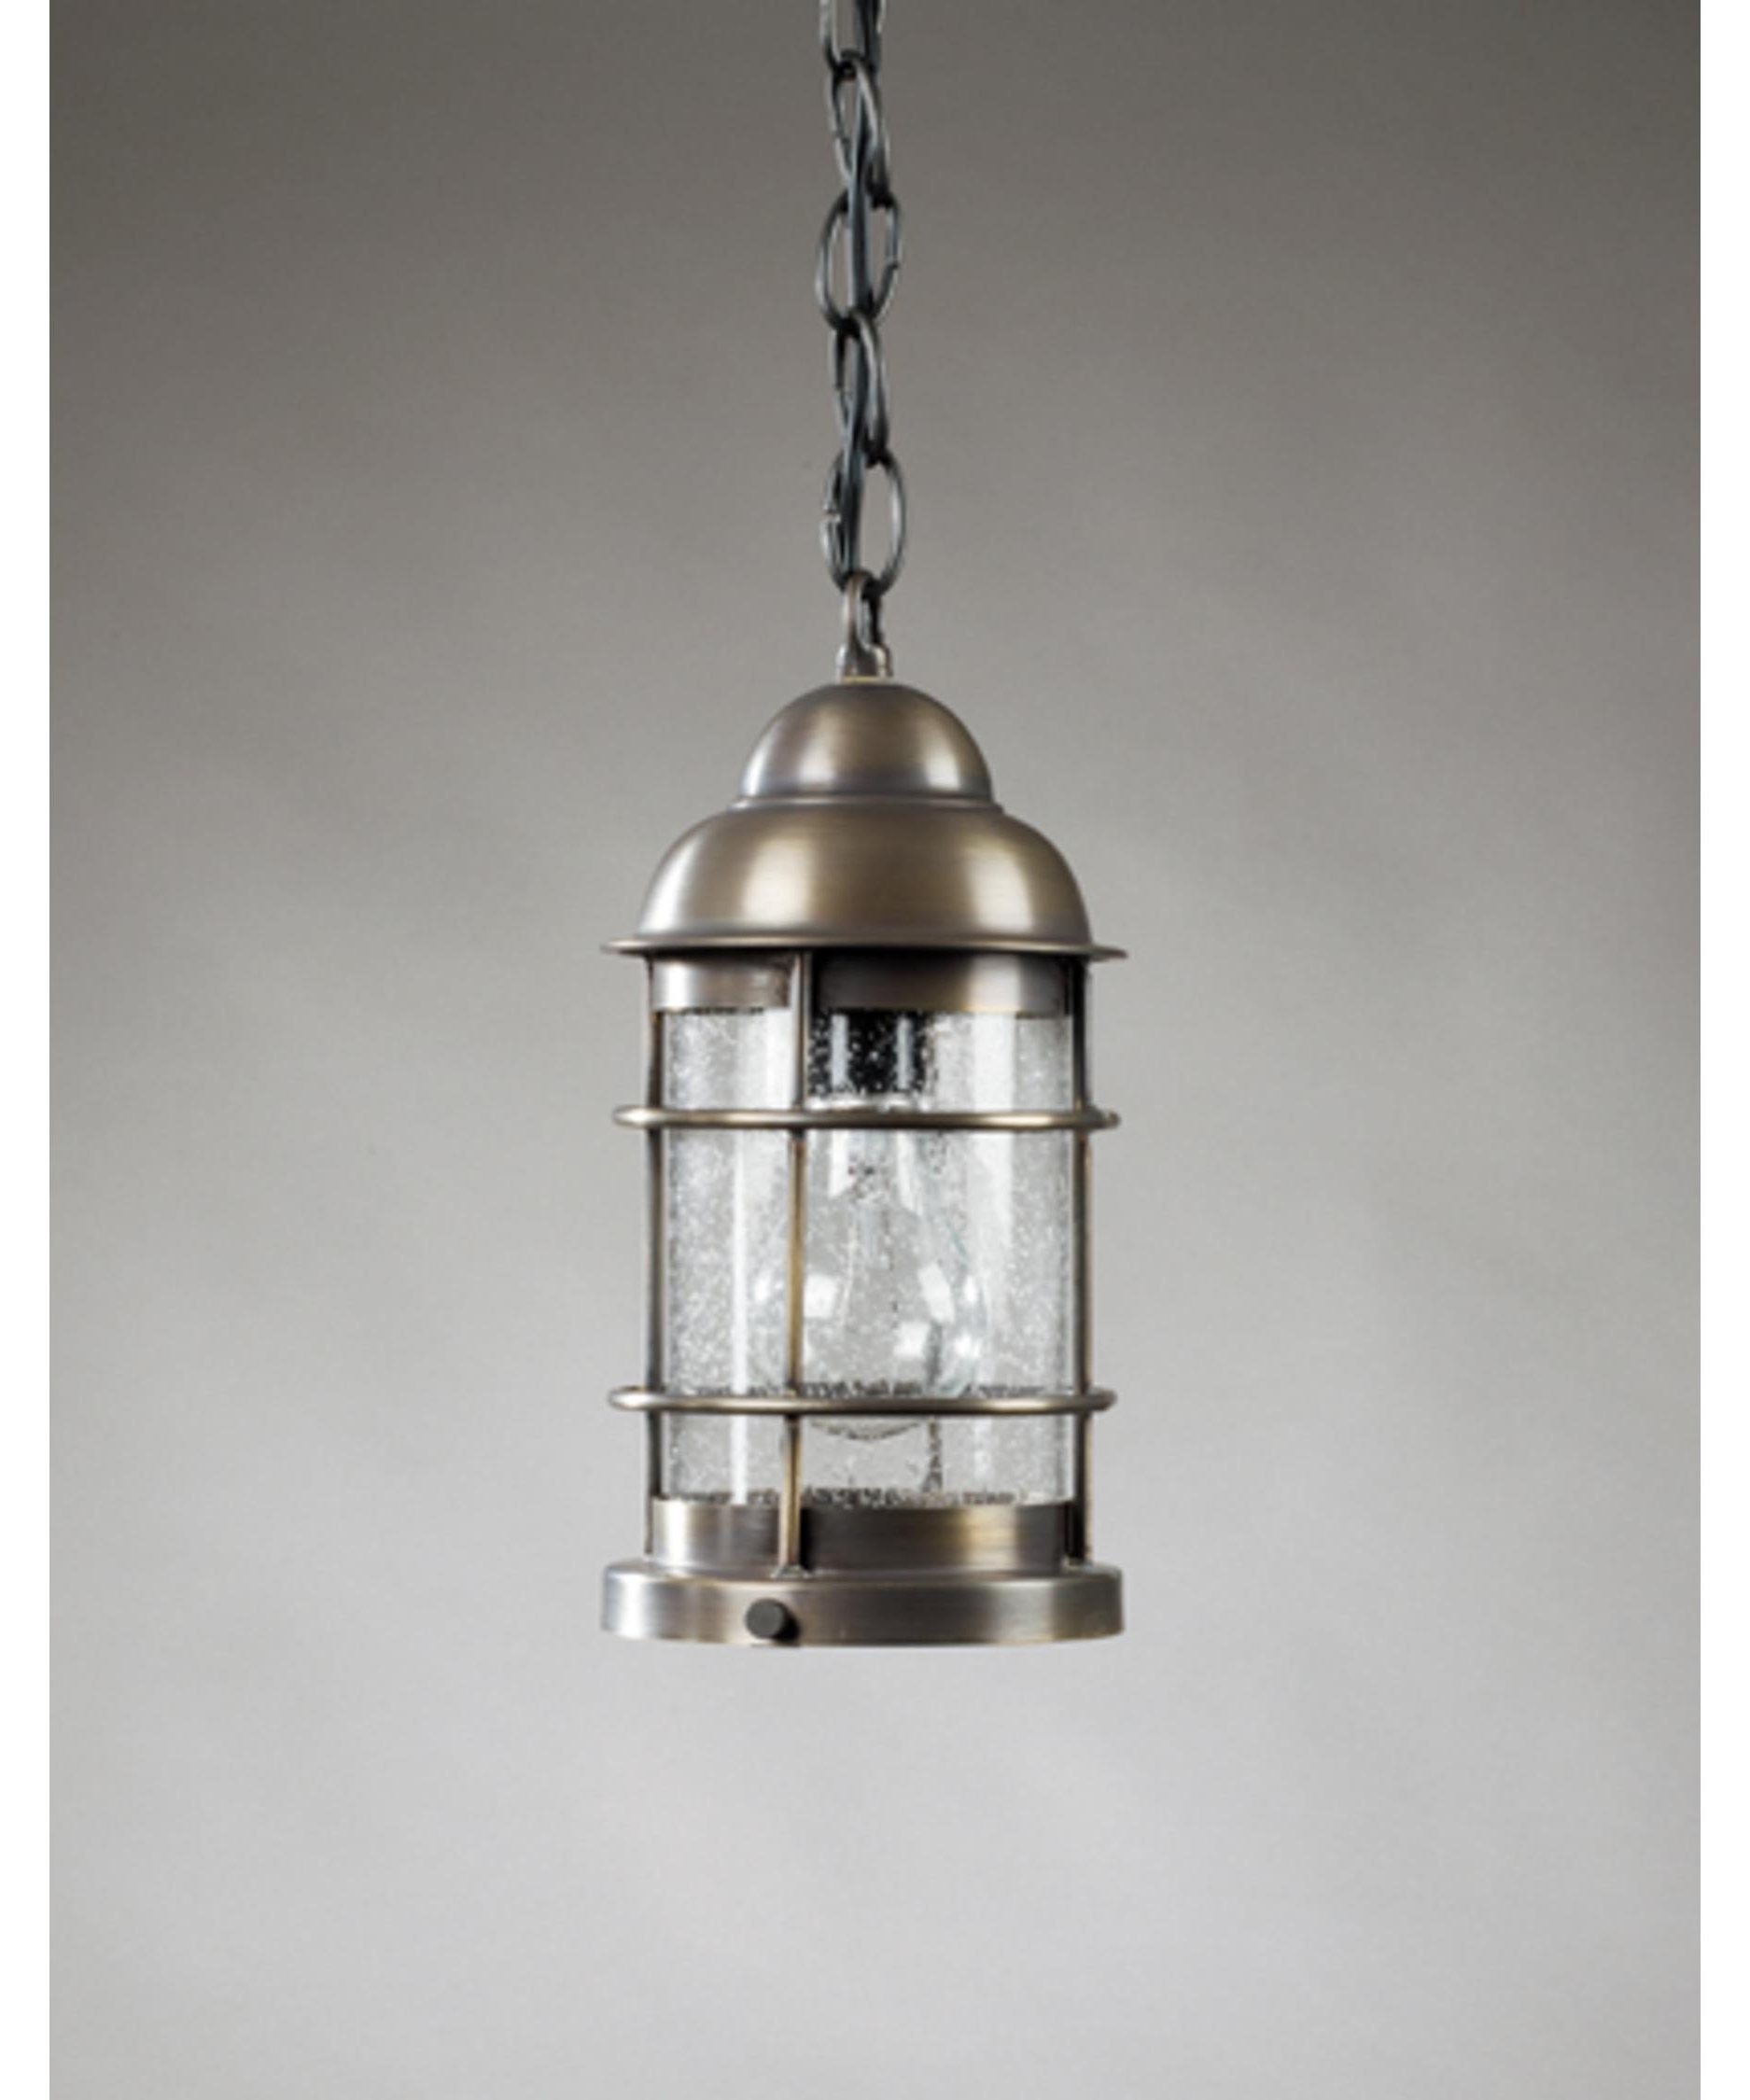 Best And Newest Pendant Lights: Glamorous Nautical Pendant Lights Nautical Ceiling With Outdoor Nautical Lanterns (View 10 of 20)